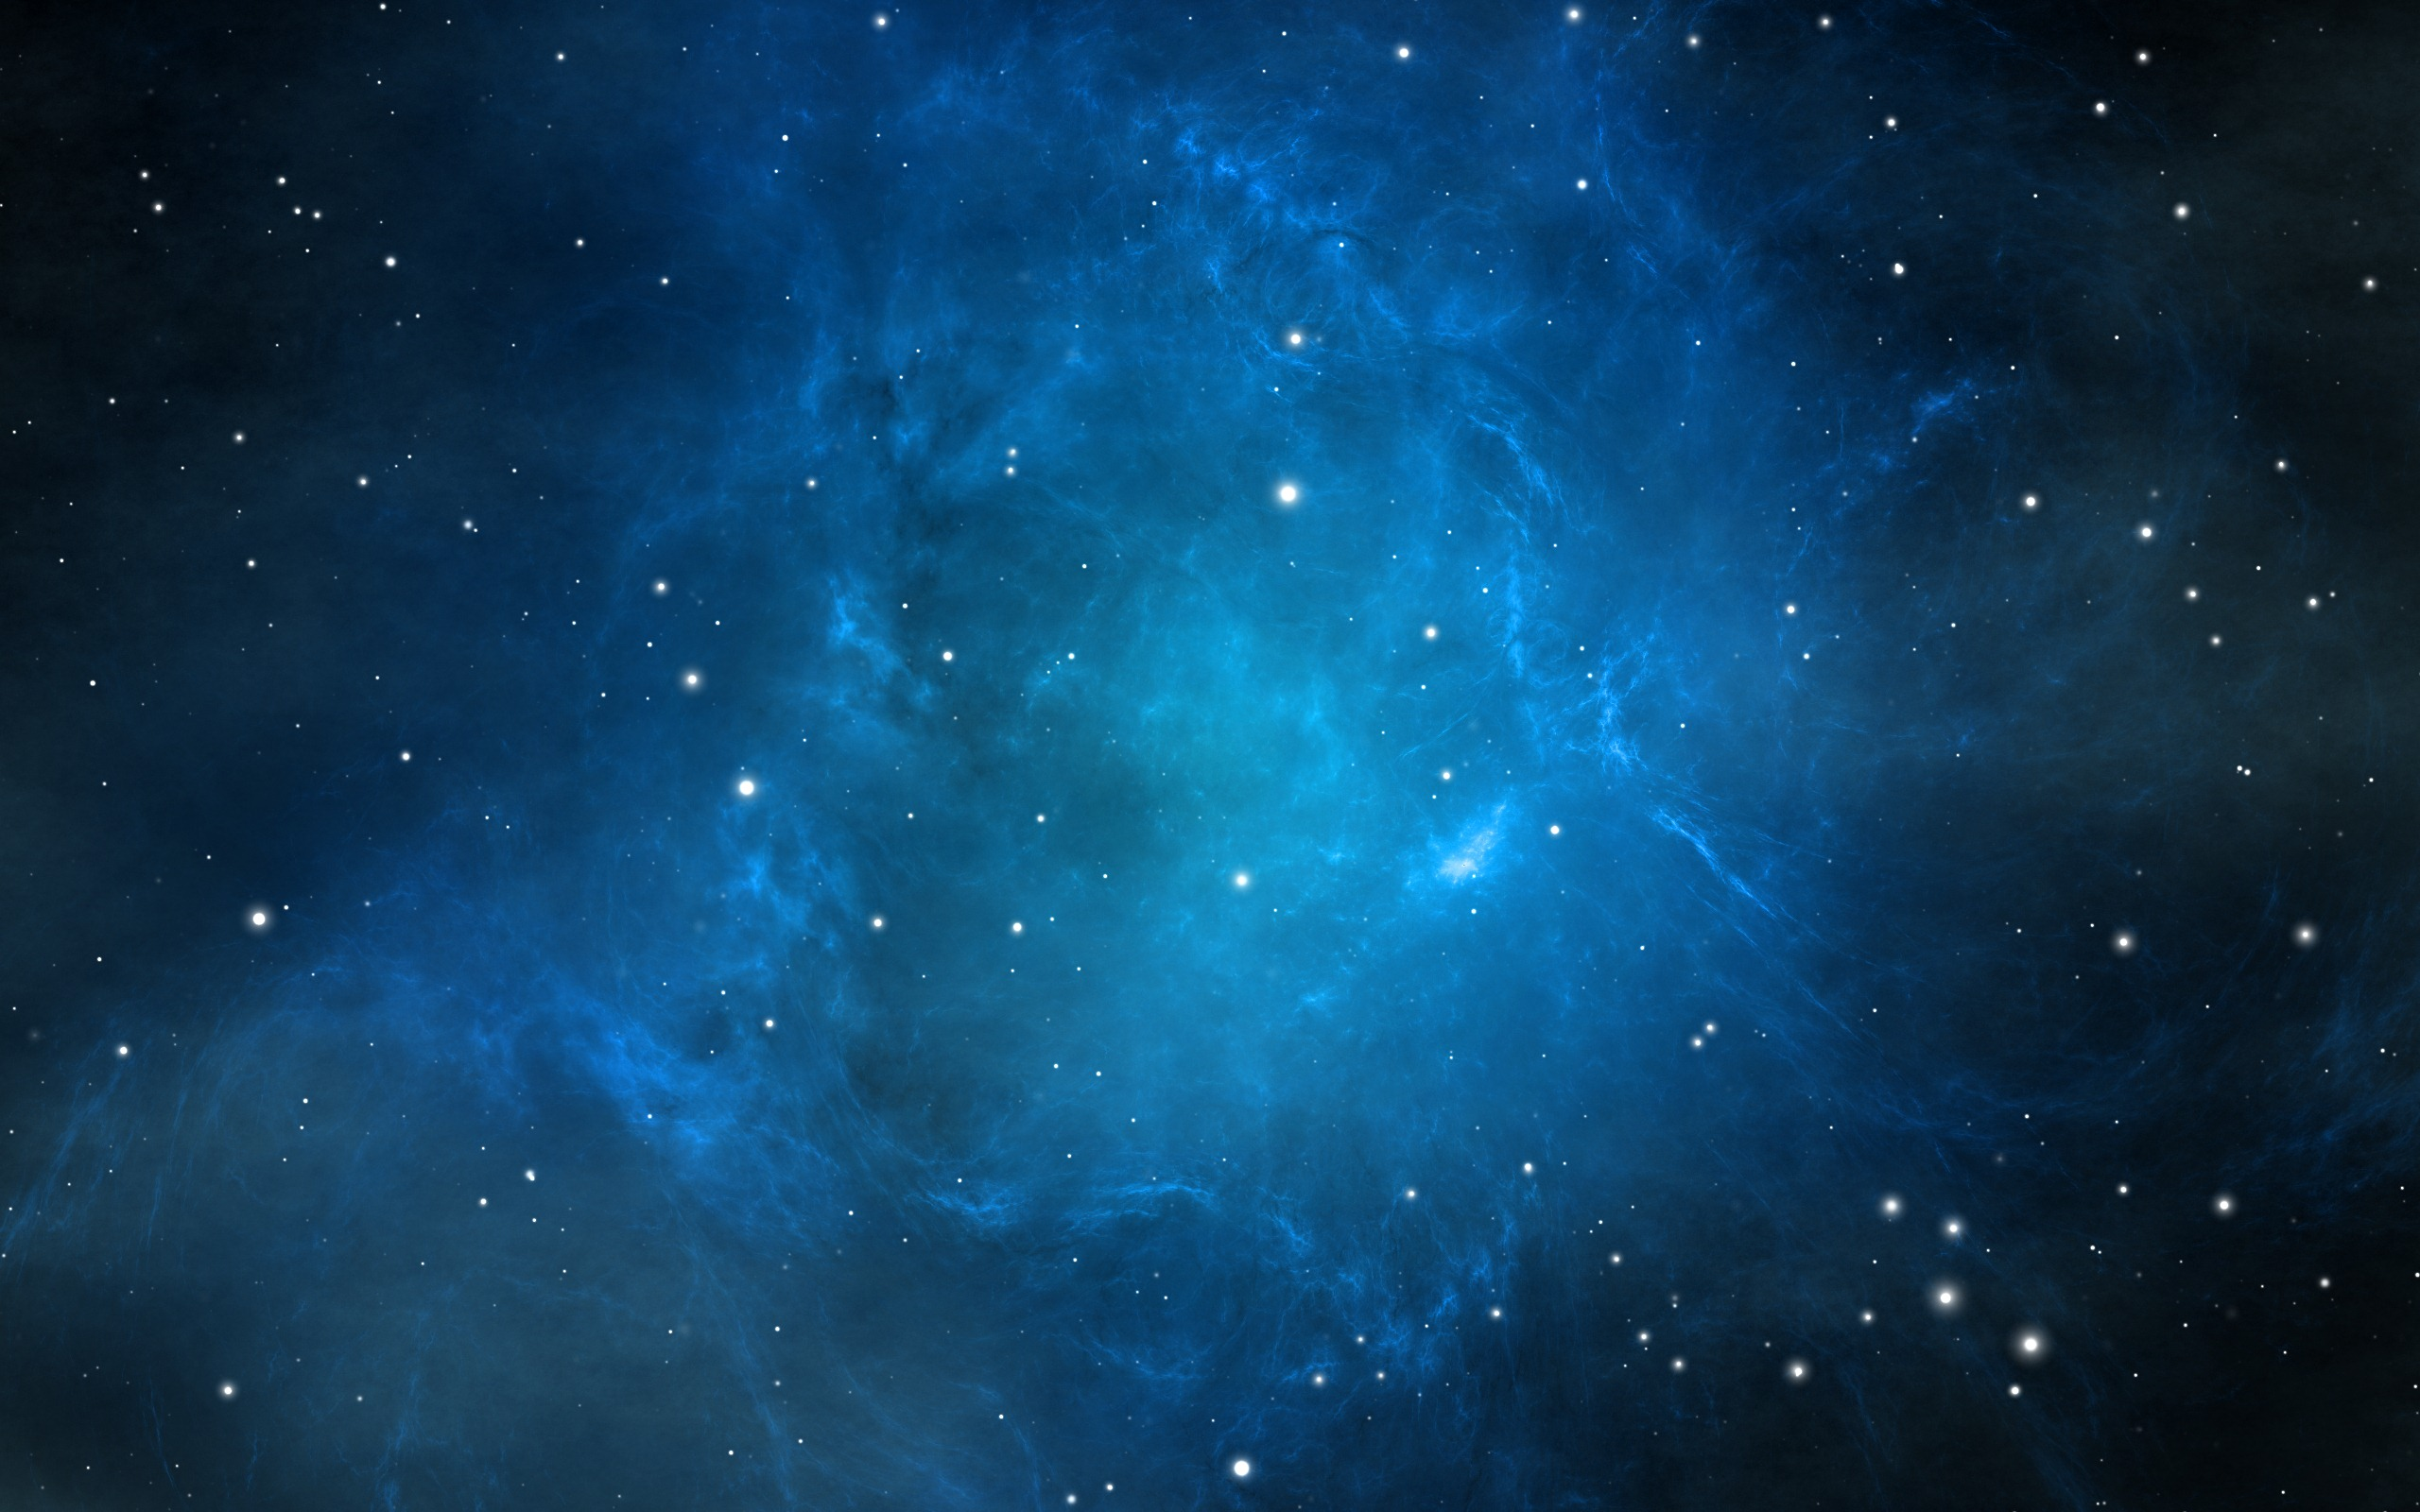 Tumblr Backgrounds Galaxy Star   Pics about space 2560x1600